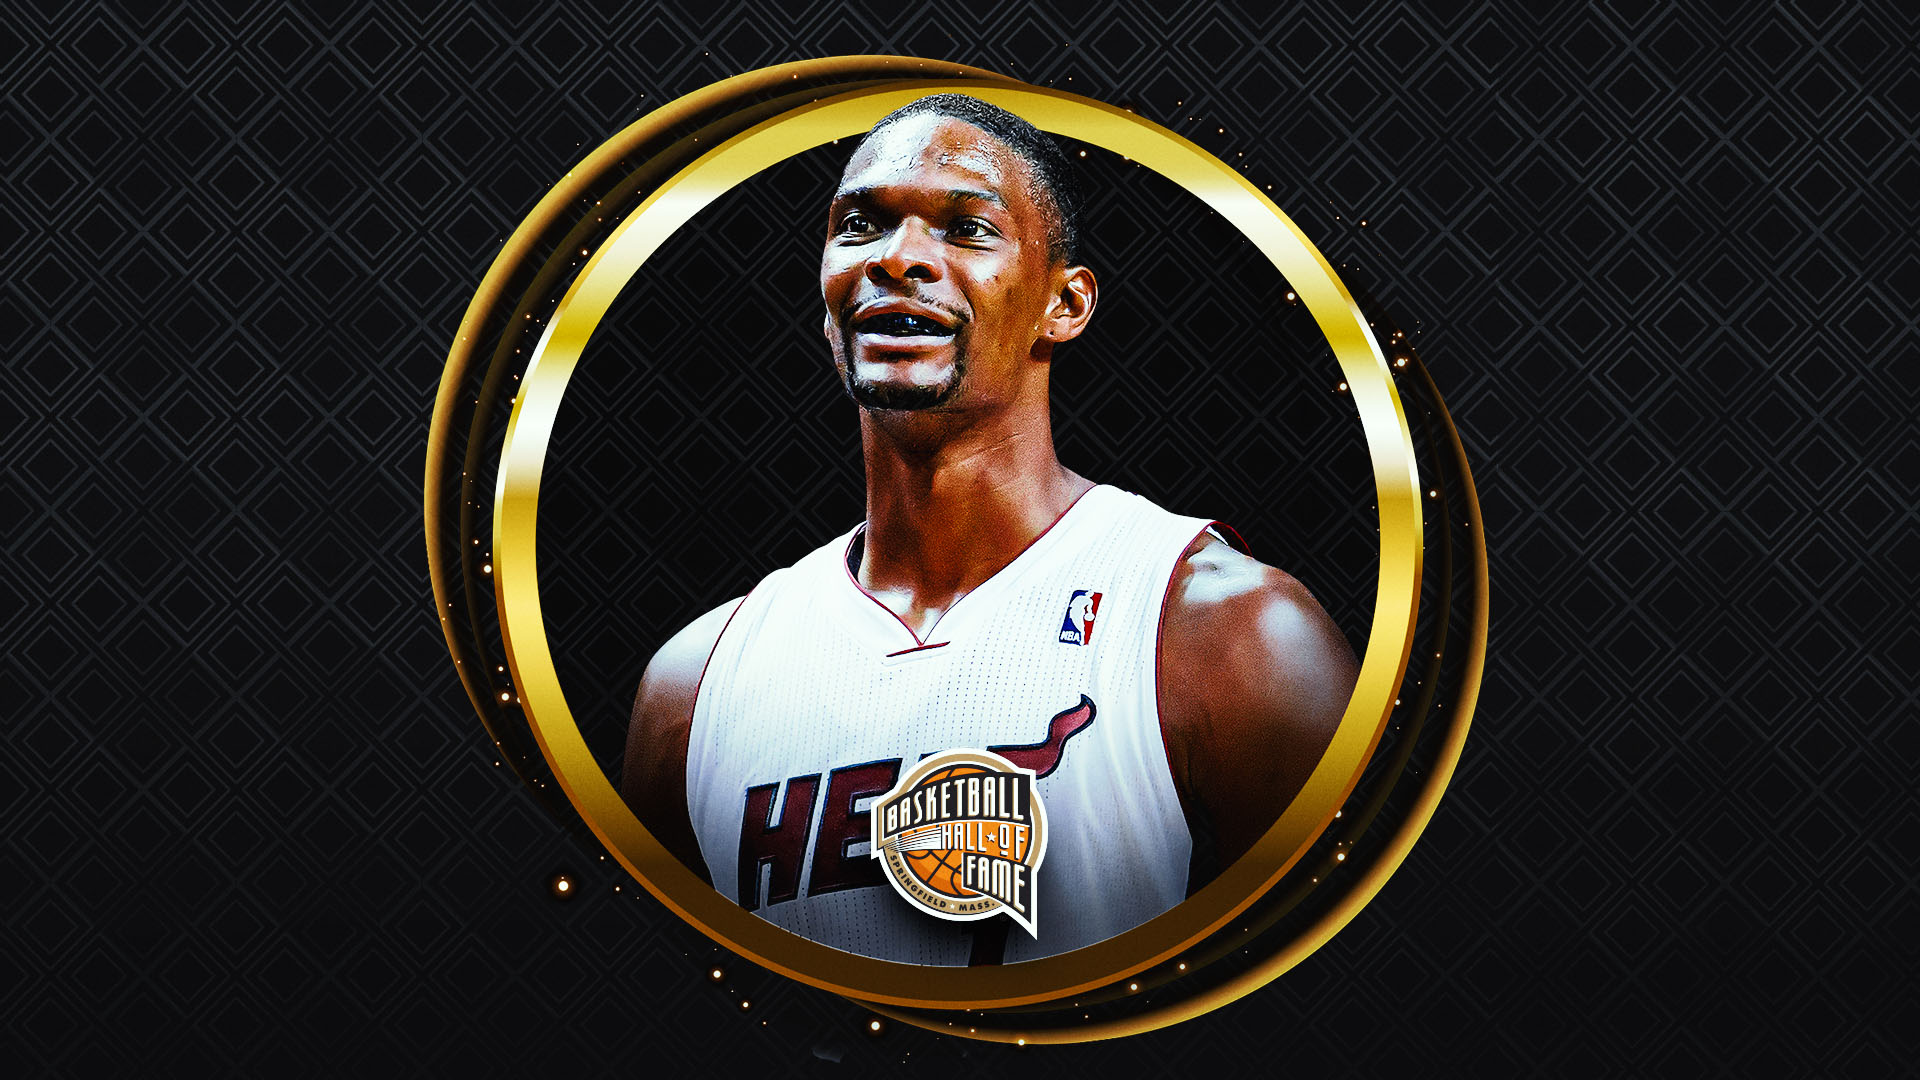 Unique focus carried Chris Bosh into Hall of Fame